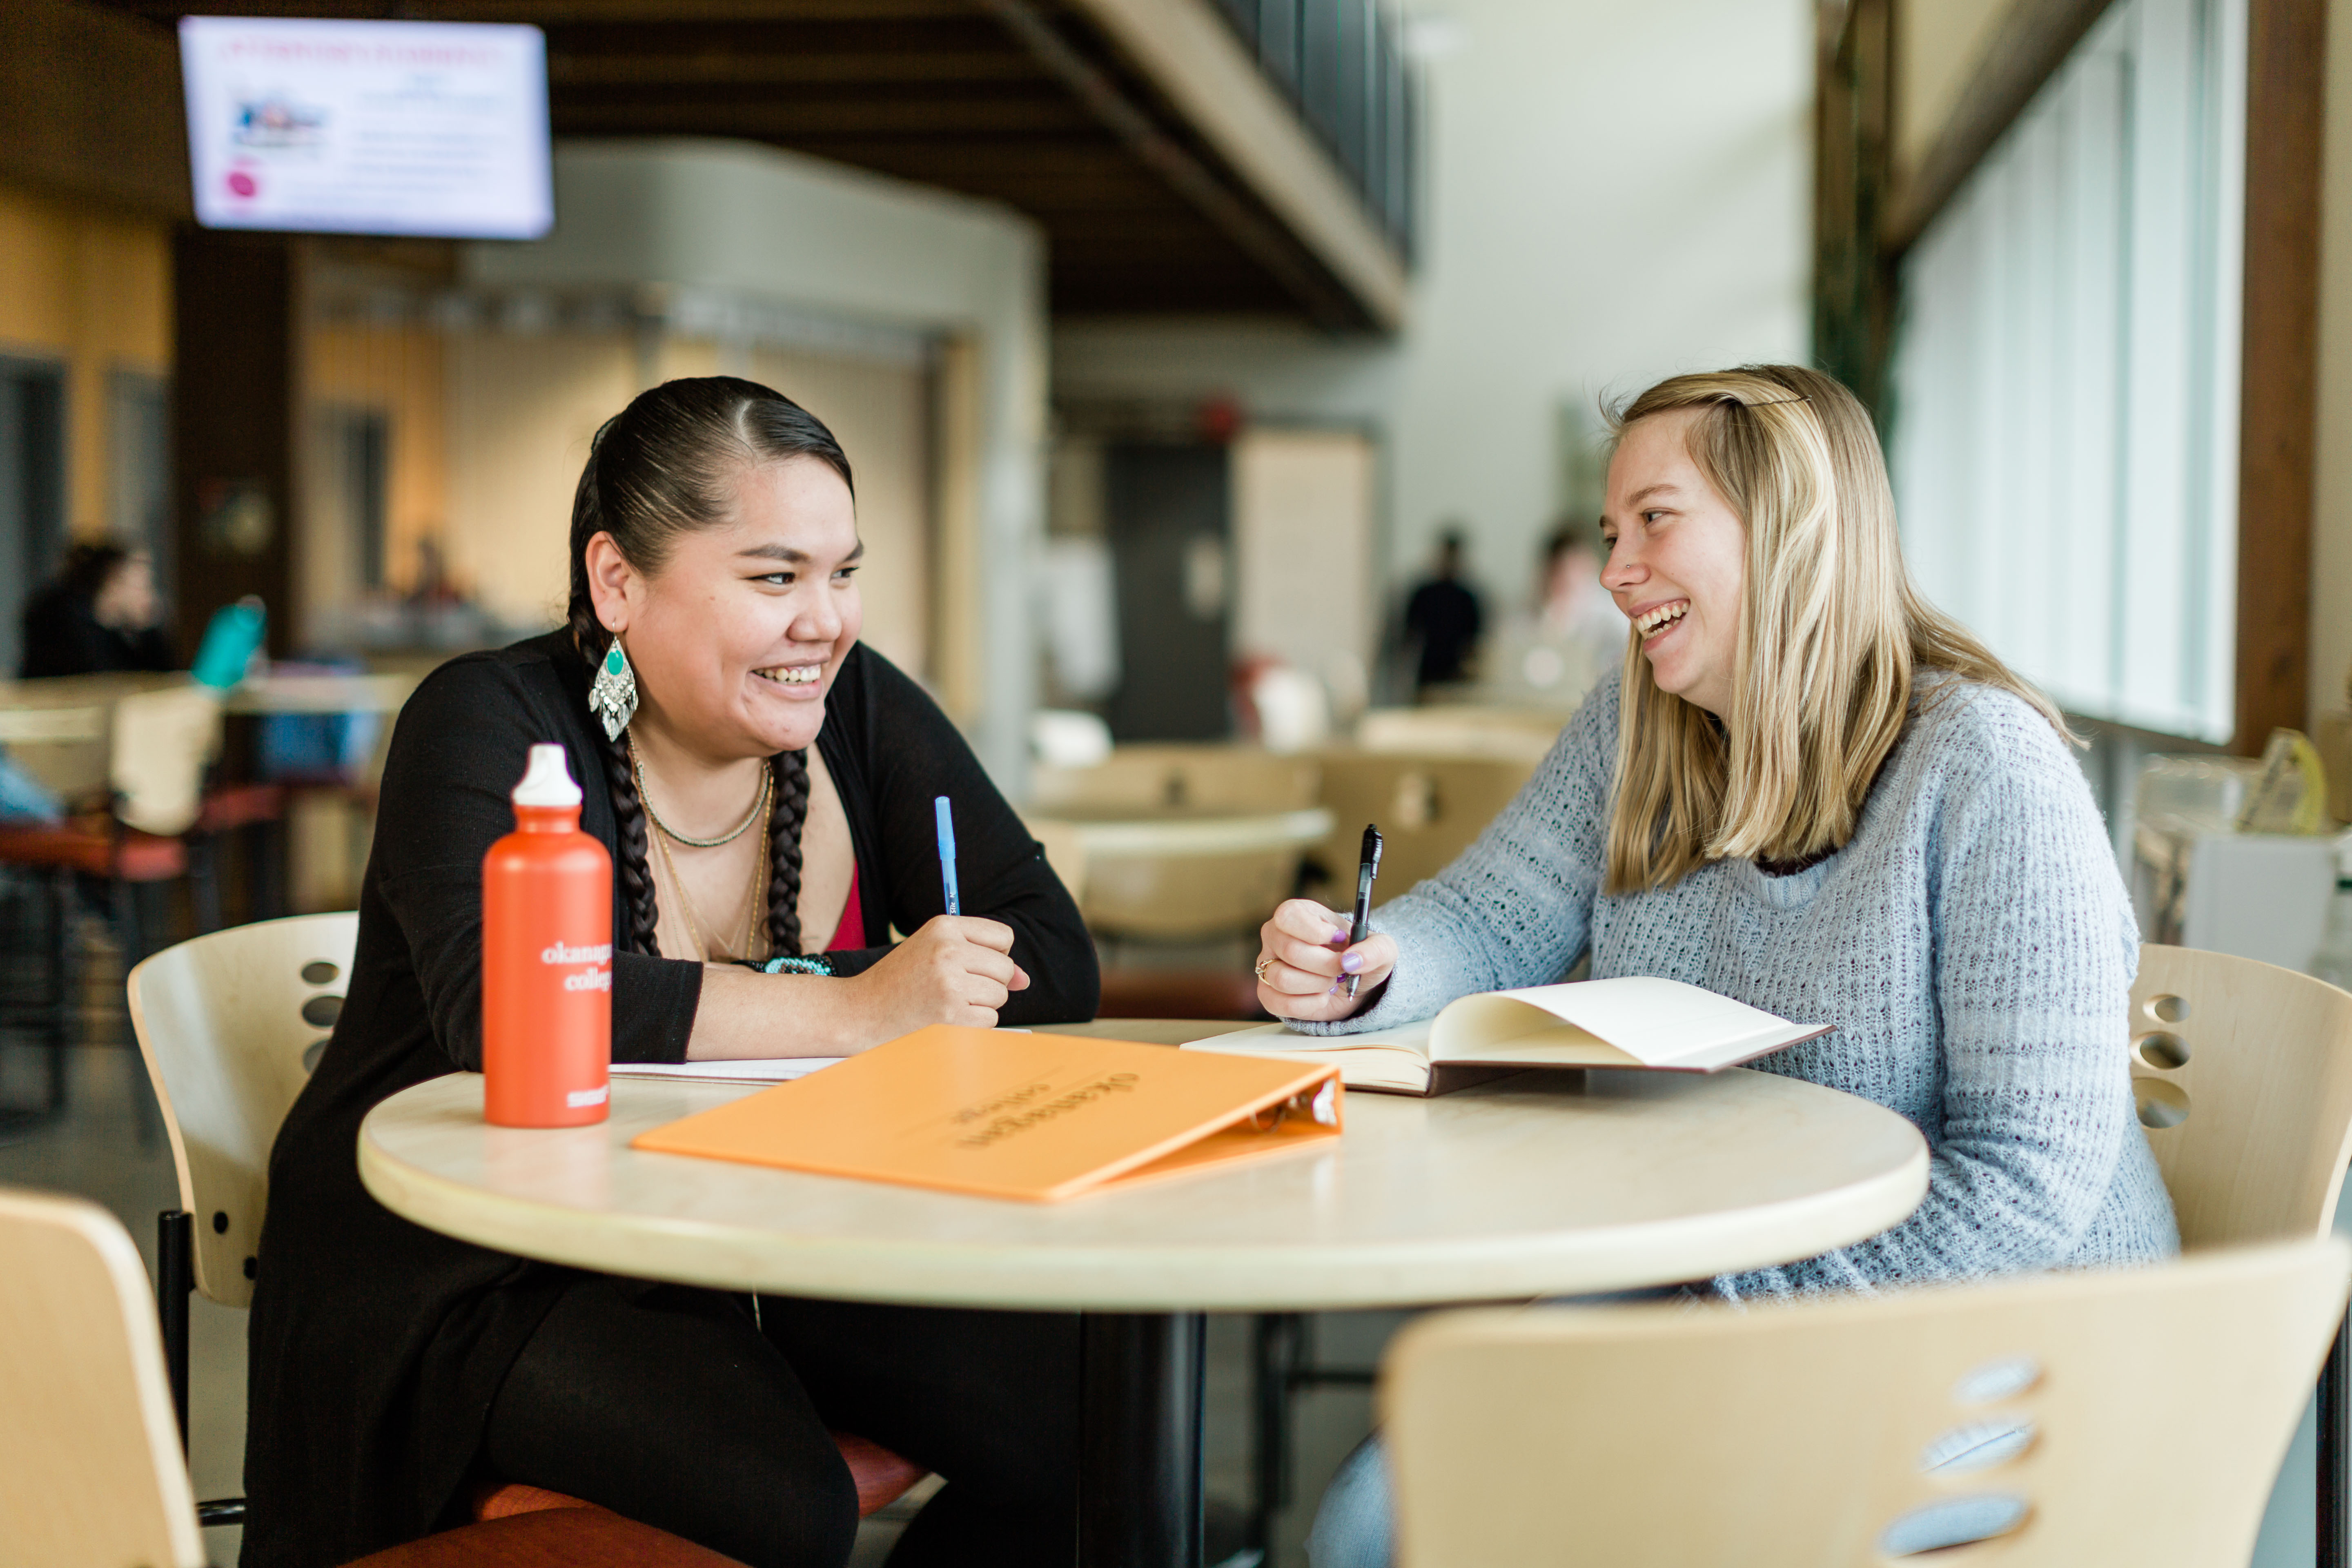 Students hang out in between classes at the Penticton campus